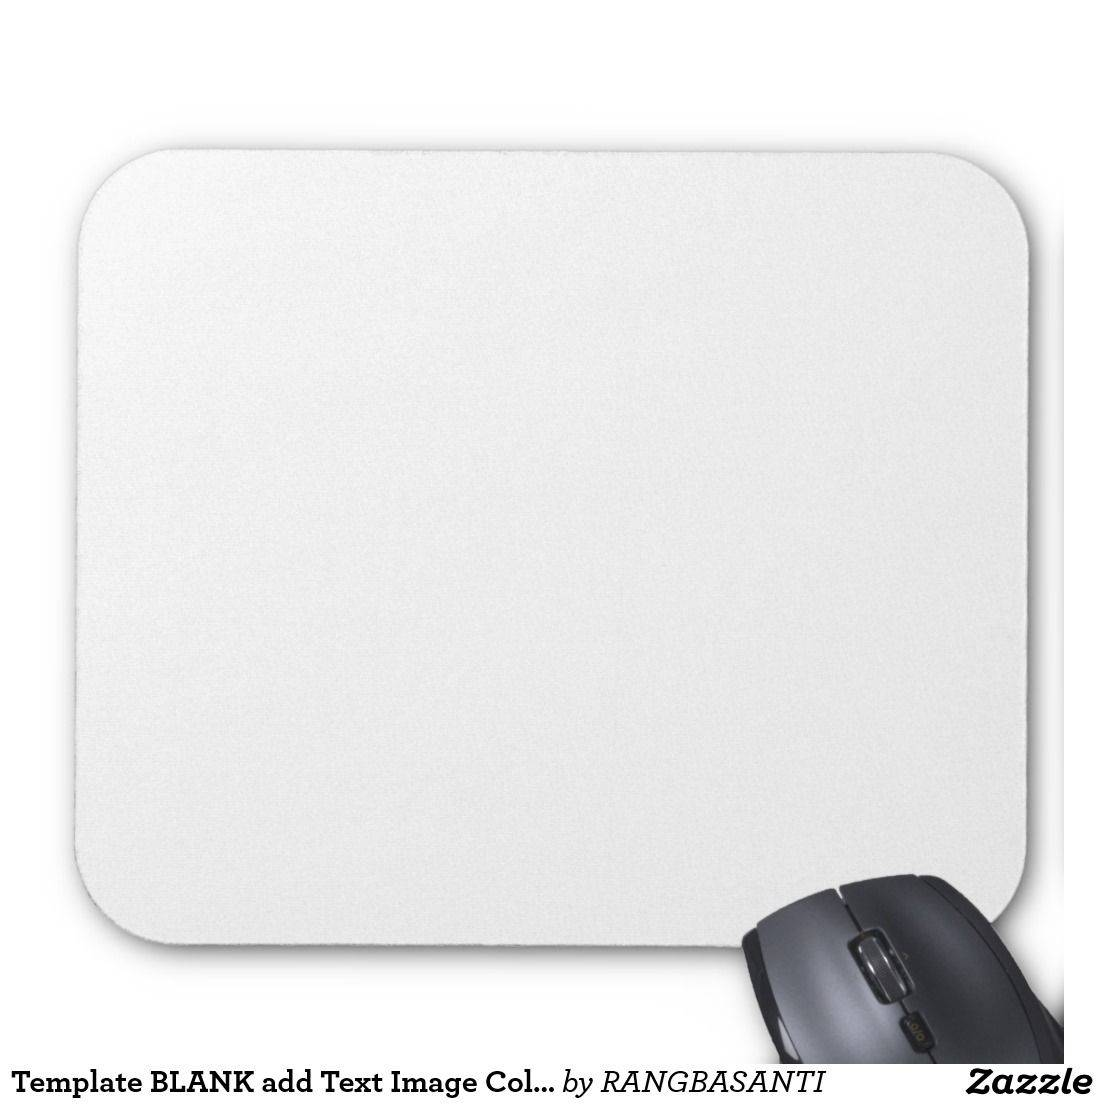 Mouse Pad Template